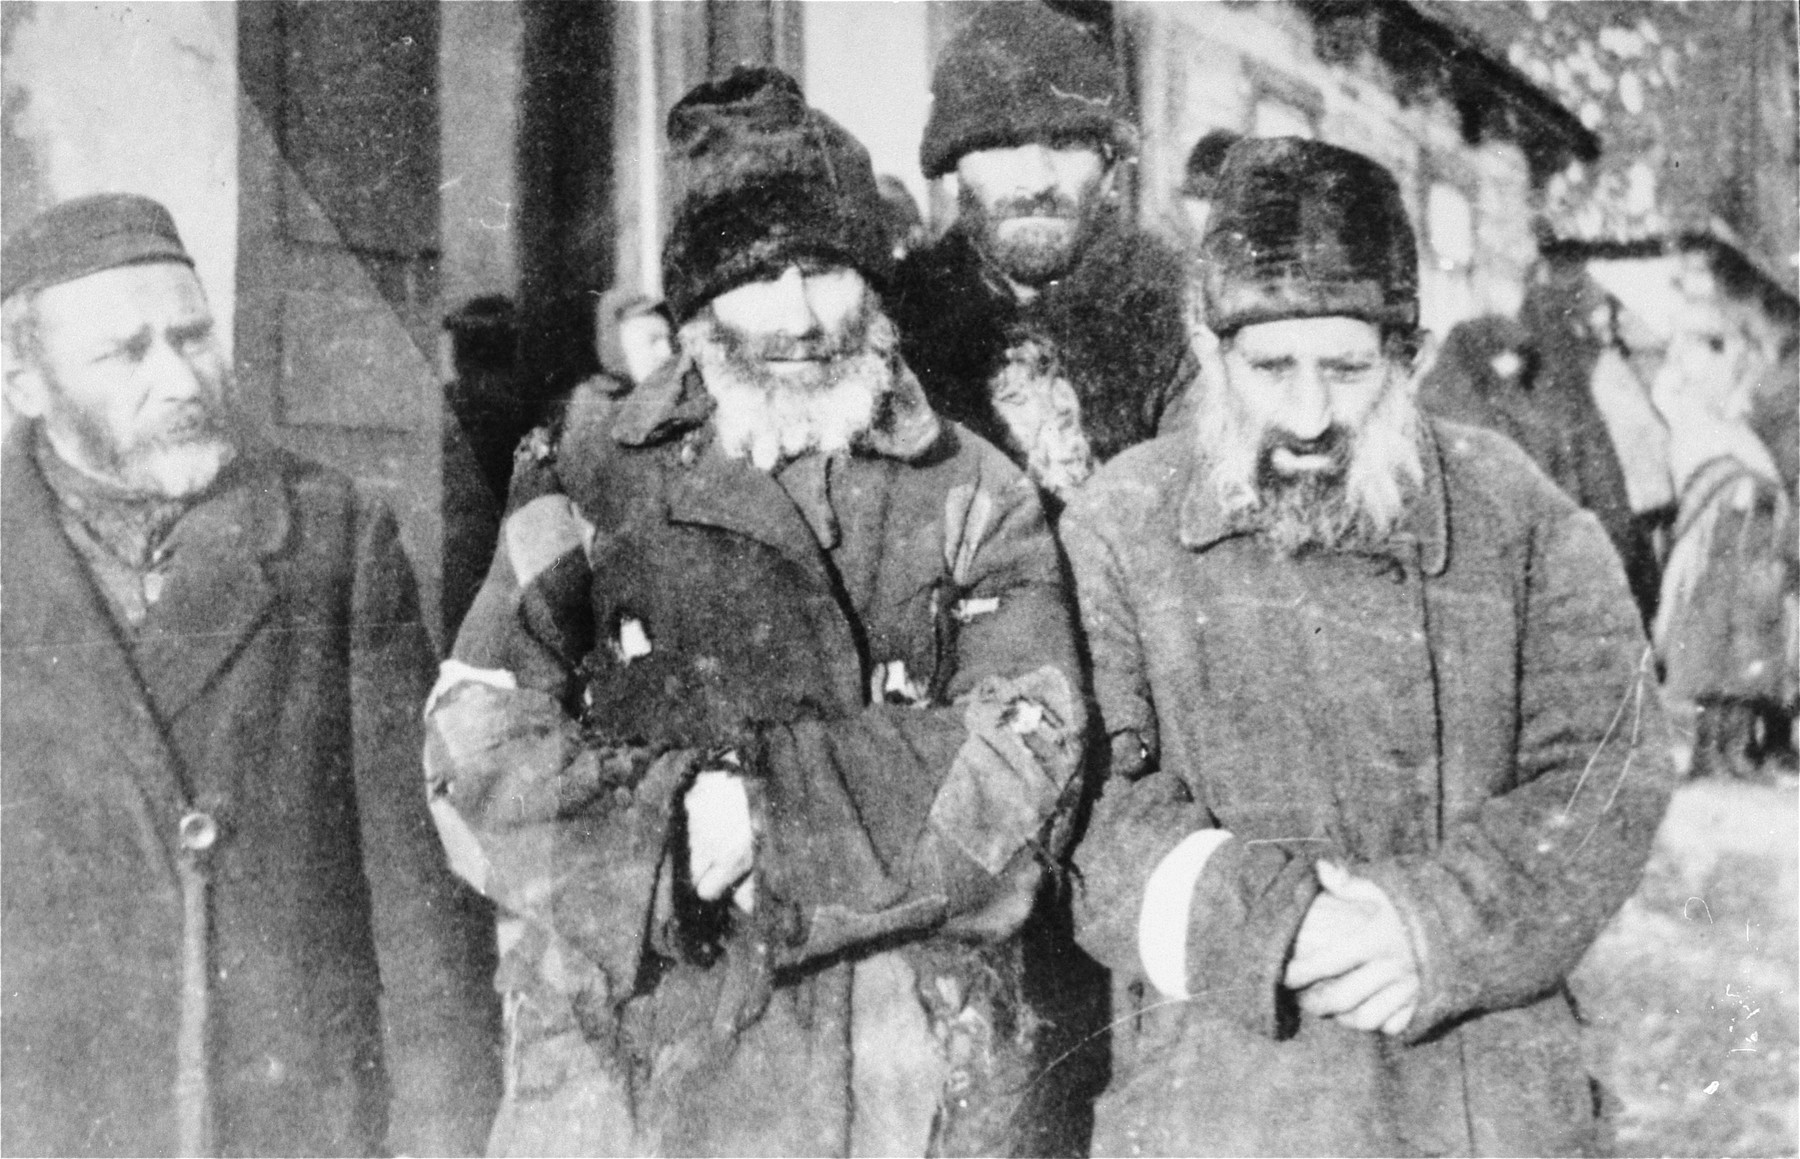 Four Jewish men wearing tattered overcoats pose on a street in the Wisznice ghetto.  Pictured from left to right are: Jankiel Waserman, Wigda Szpektor, Szmul Fojgenbaum and Abram Koltun. They were subsequently deported to Treblinka.